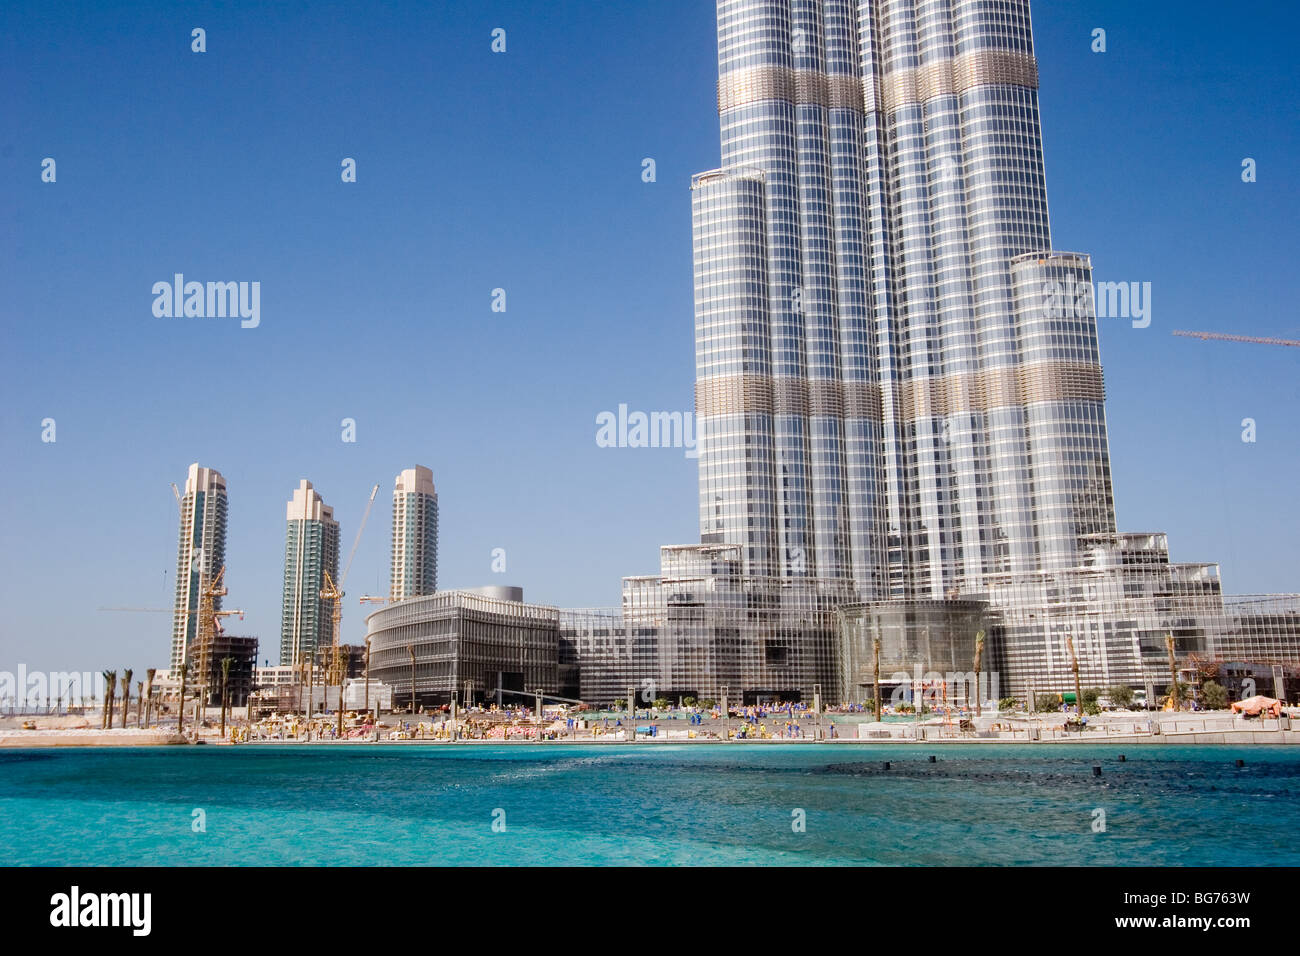 burj dubai das h chste geb ude der welt stockfoto bild 27203341 alamy. Black Bedroom Furniture Sets. Home Design Ideas